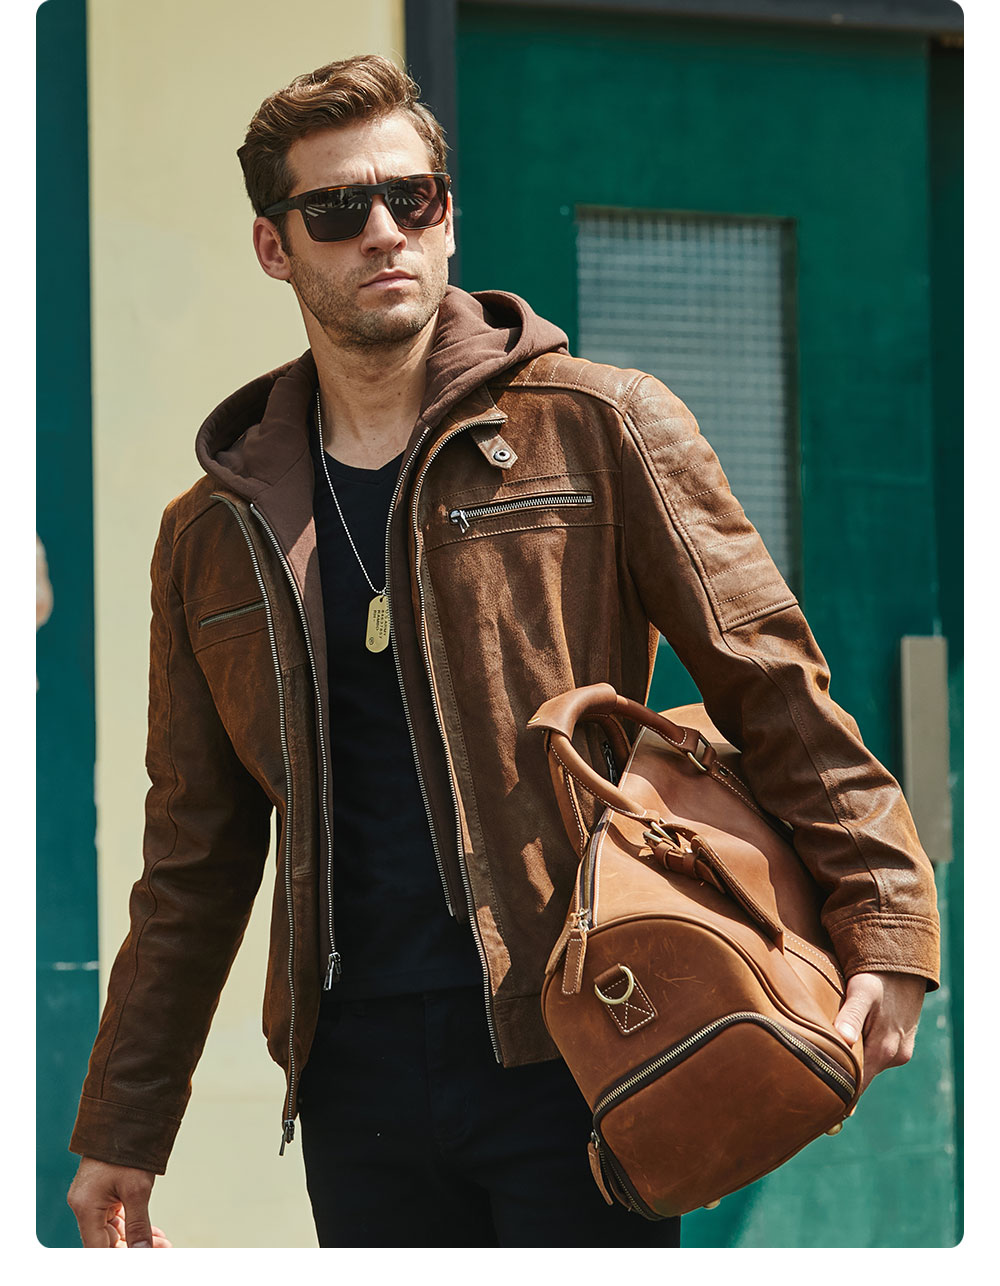 H50297e3a03524c29bec83df6309cbf83v New Men's Leather Jacket, Brown Jacket Made Of Genuine Leather With A Removable Hood, Warm Leather Jacket For Men For The Winter